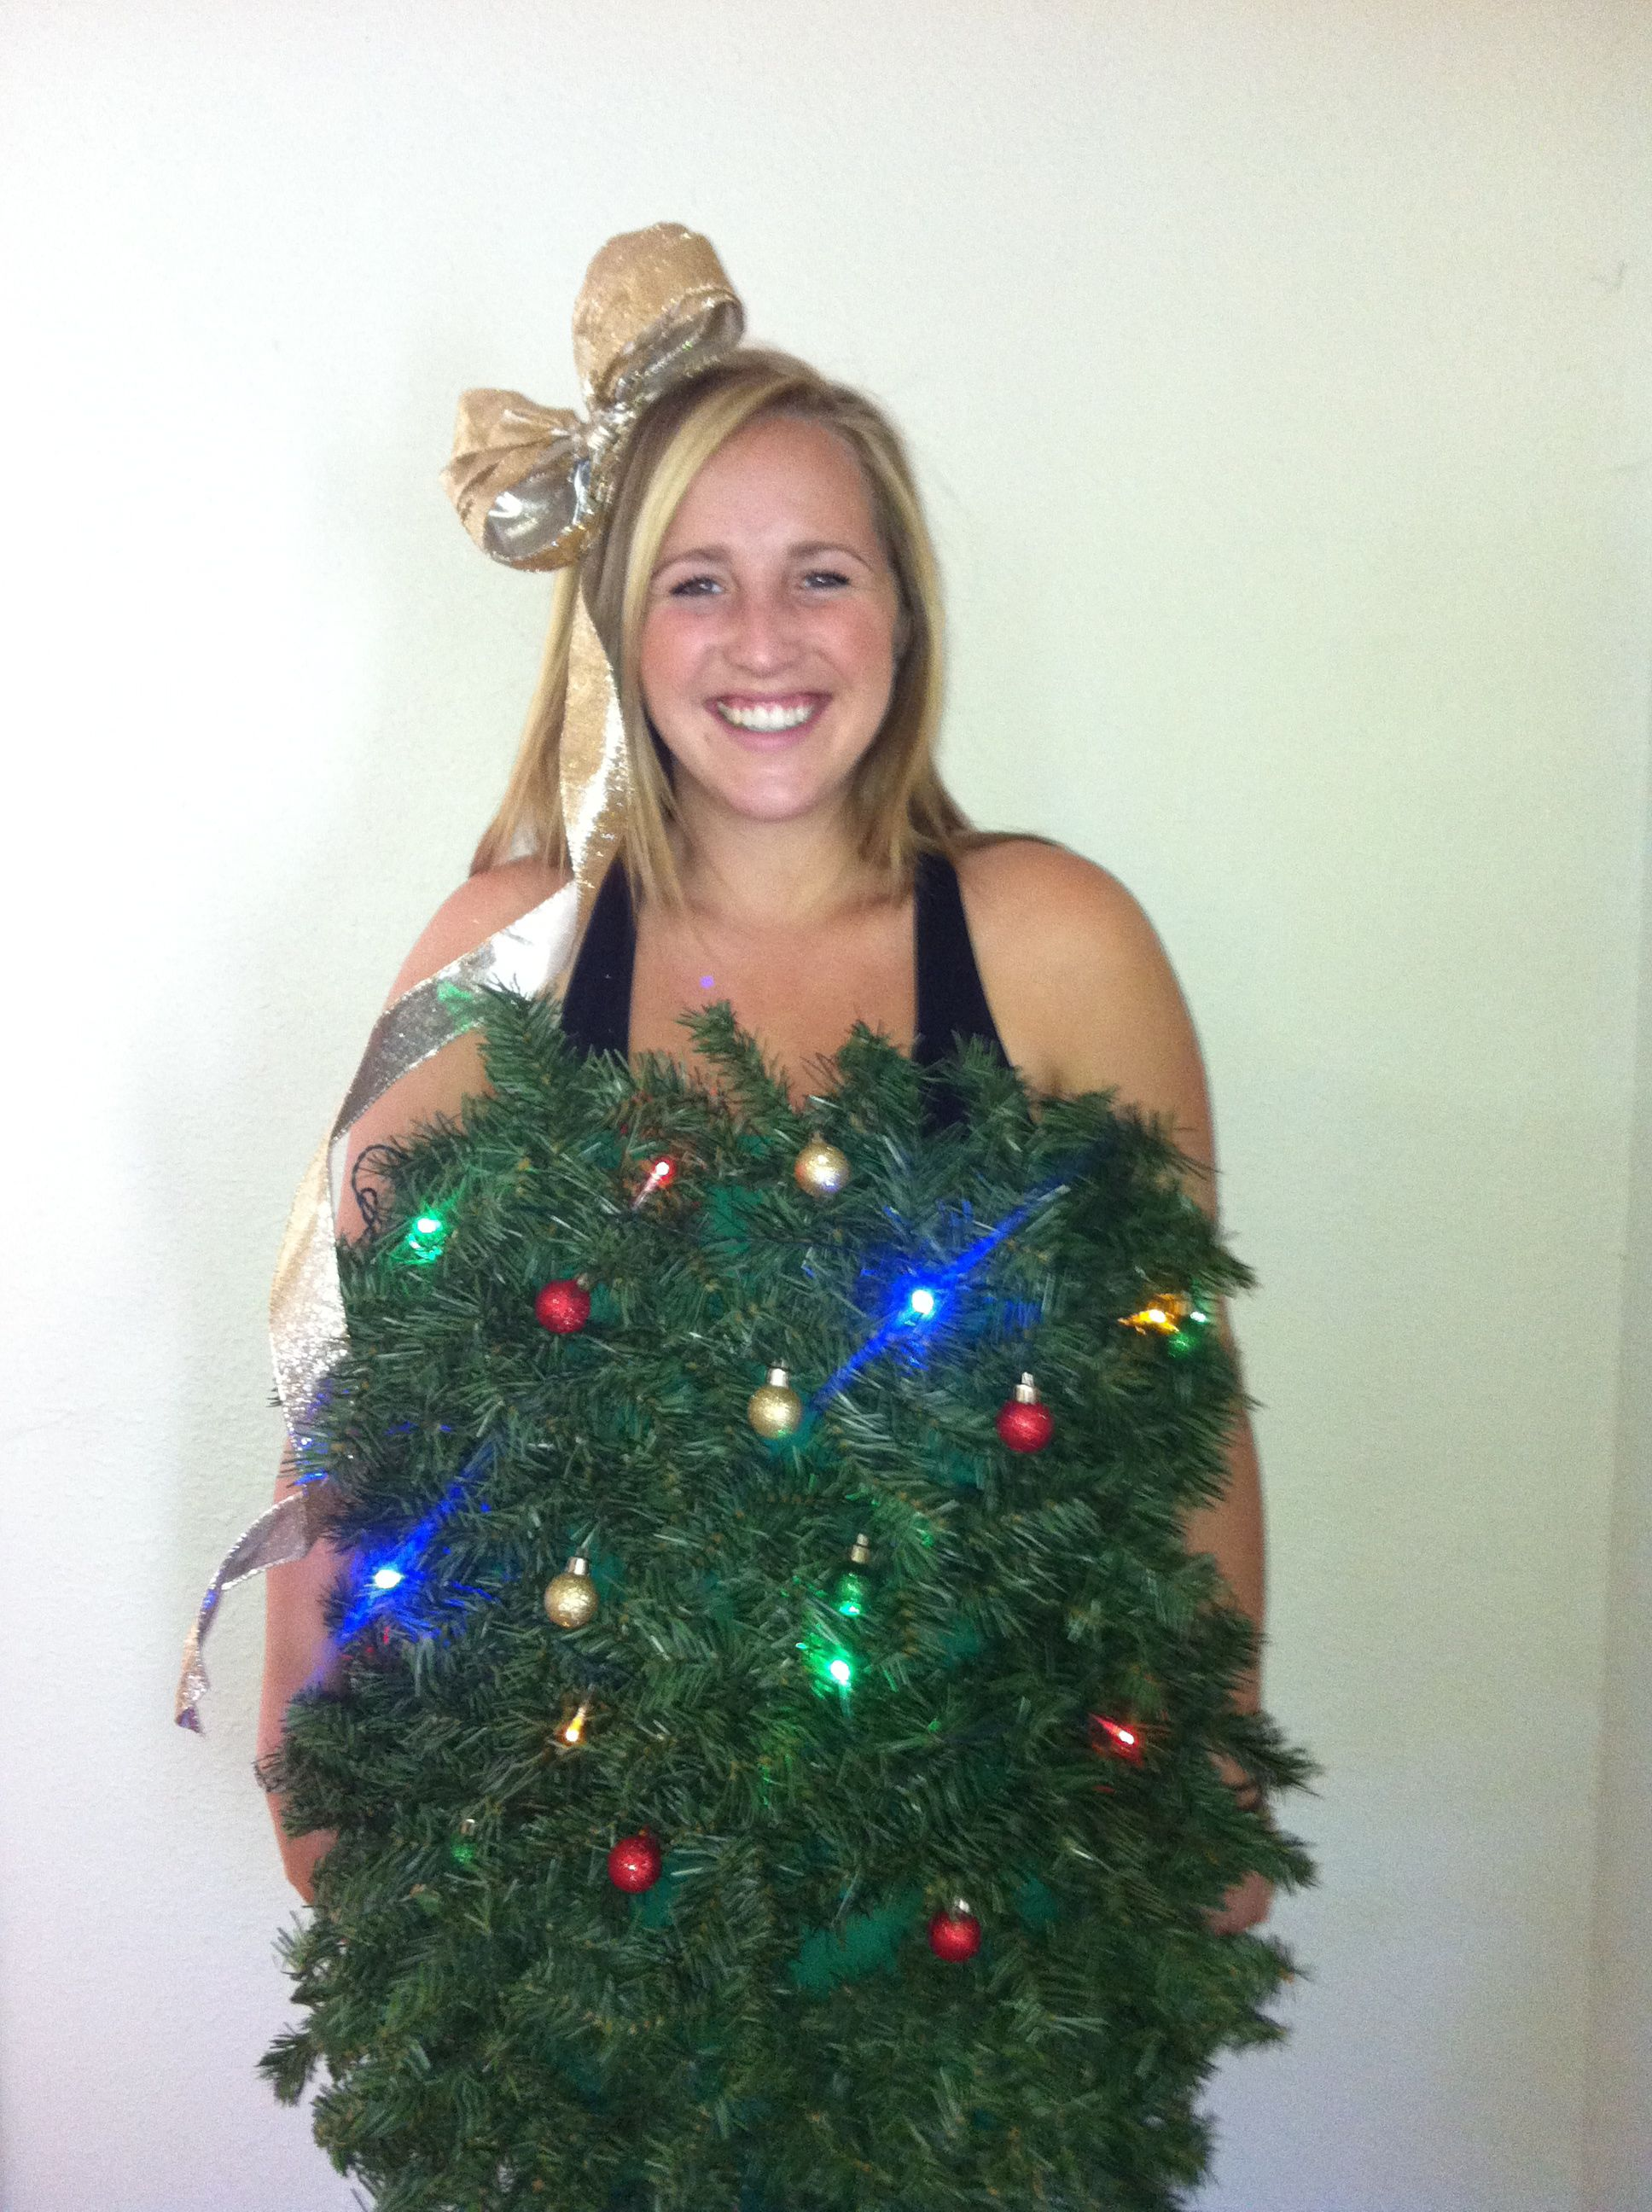 Diy Christmas Tree Costume Fake Garland And Battery Operated Lights Tree Costume Diy Christmas Tree Christmas Tree Costume